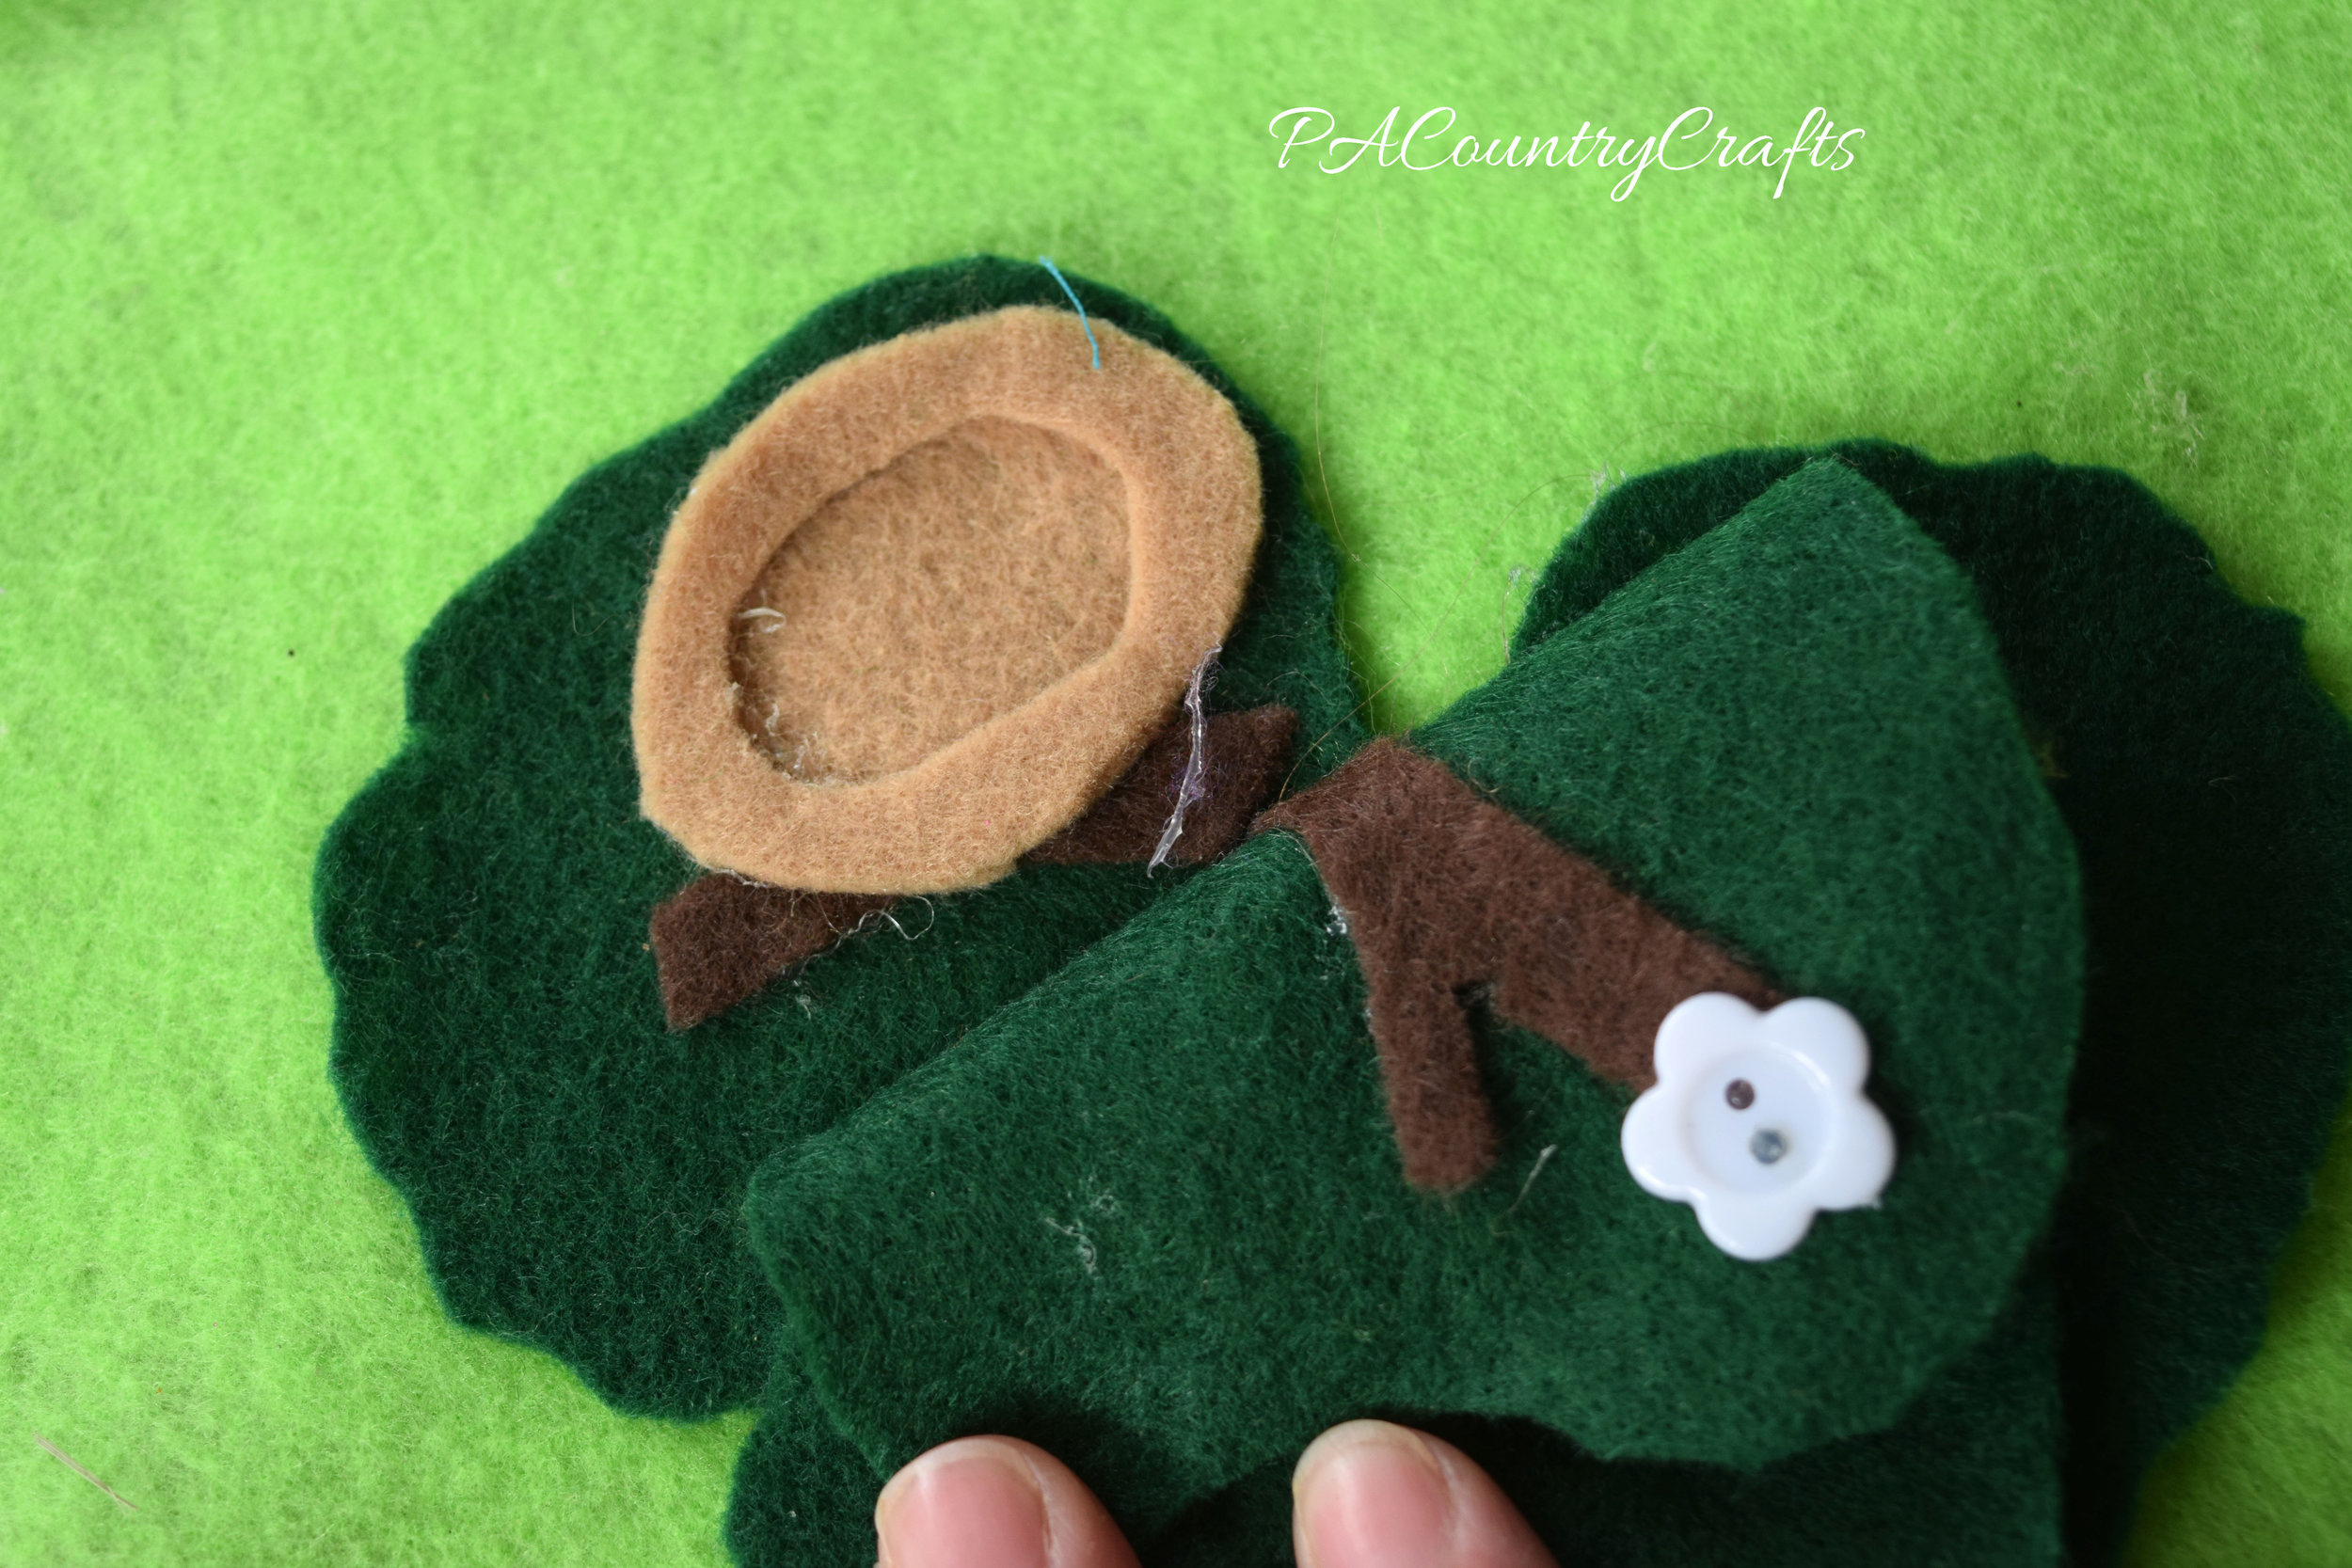 Felt bird's nest in a no-sew play mat